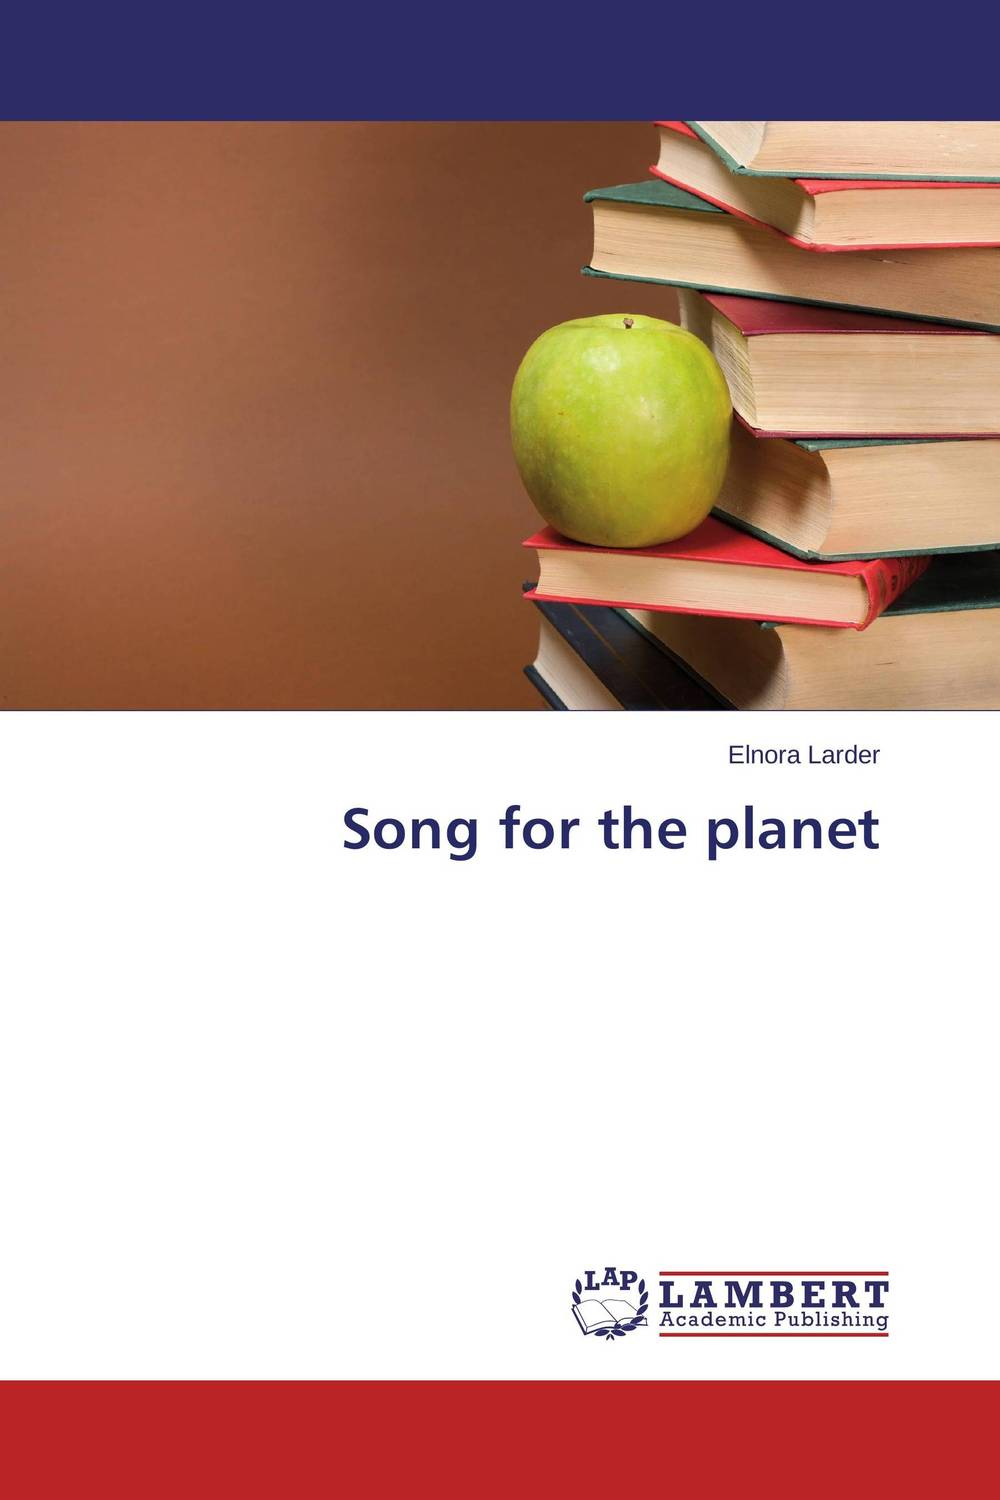 Song for the planet